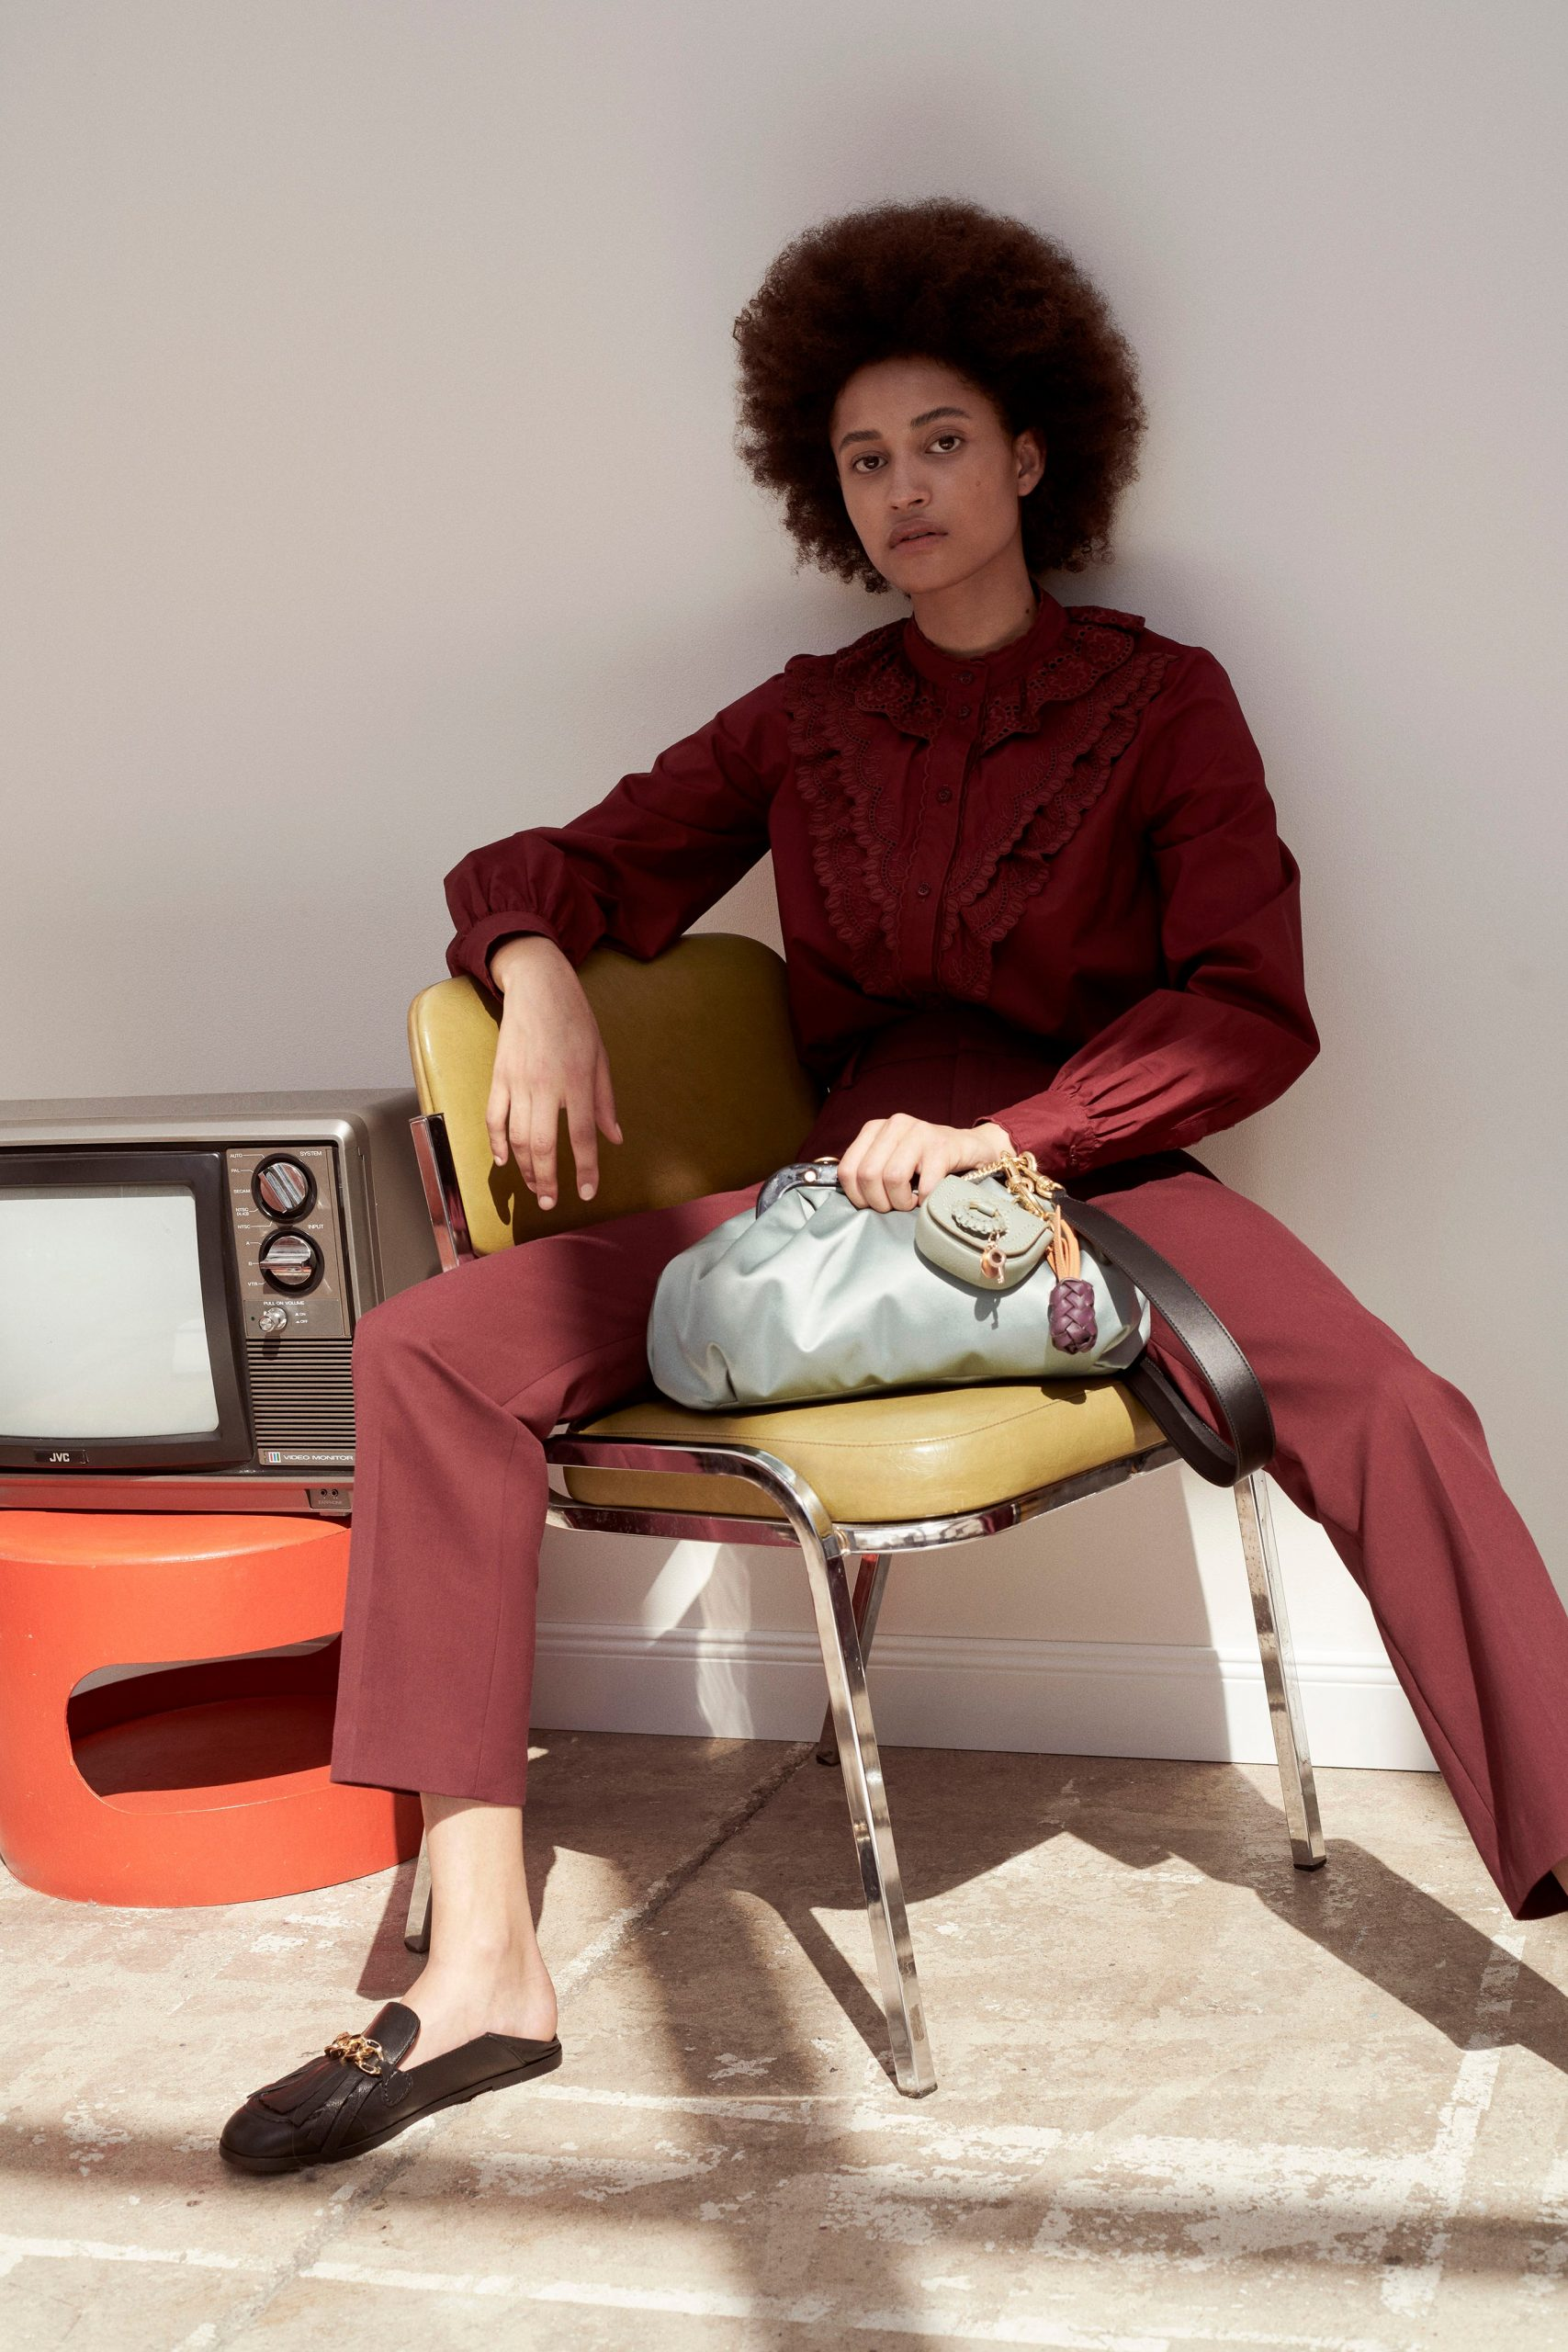 See by Chloé Resort 2021 Fashion Collection Photos